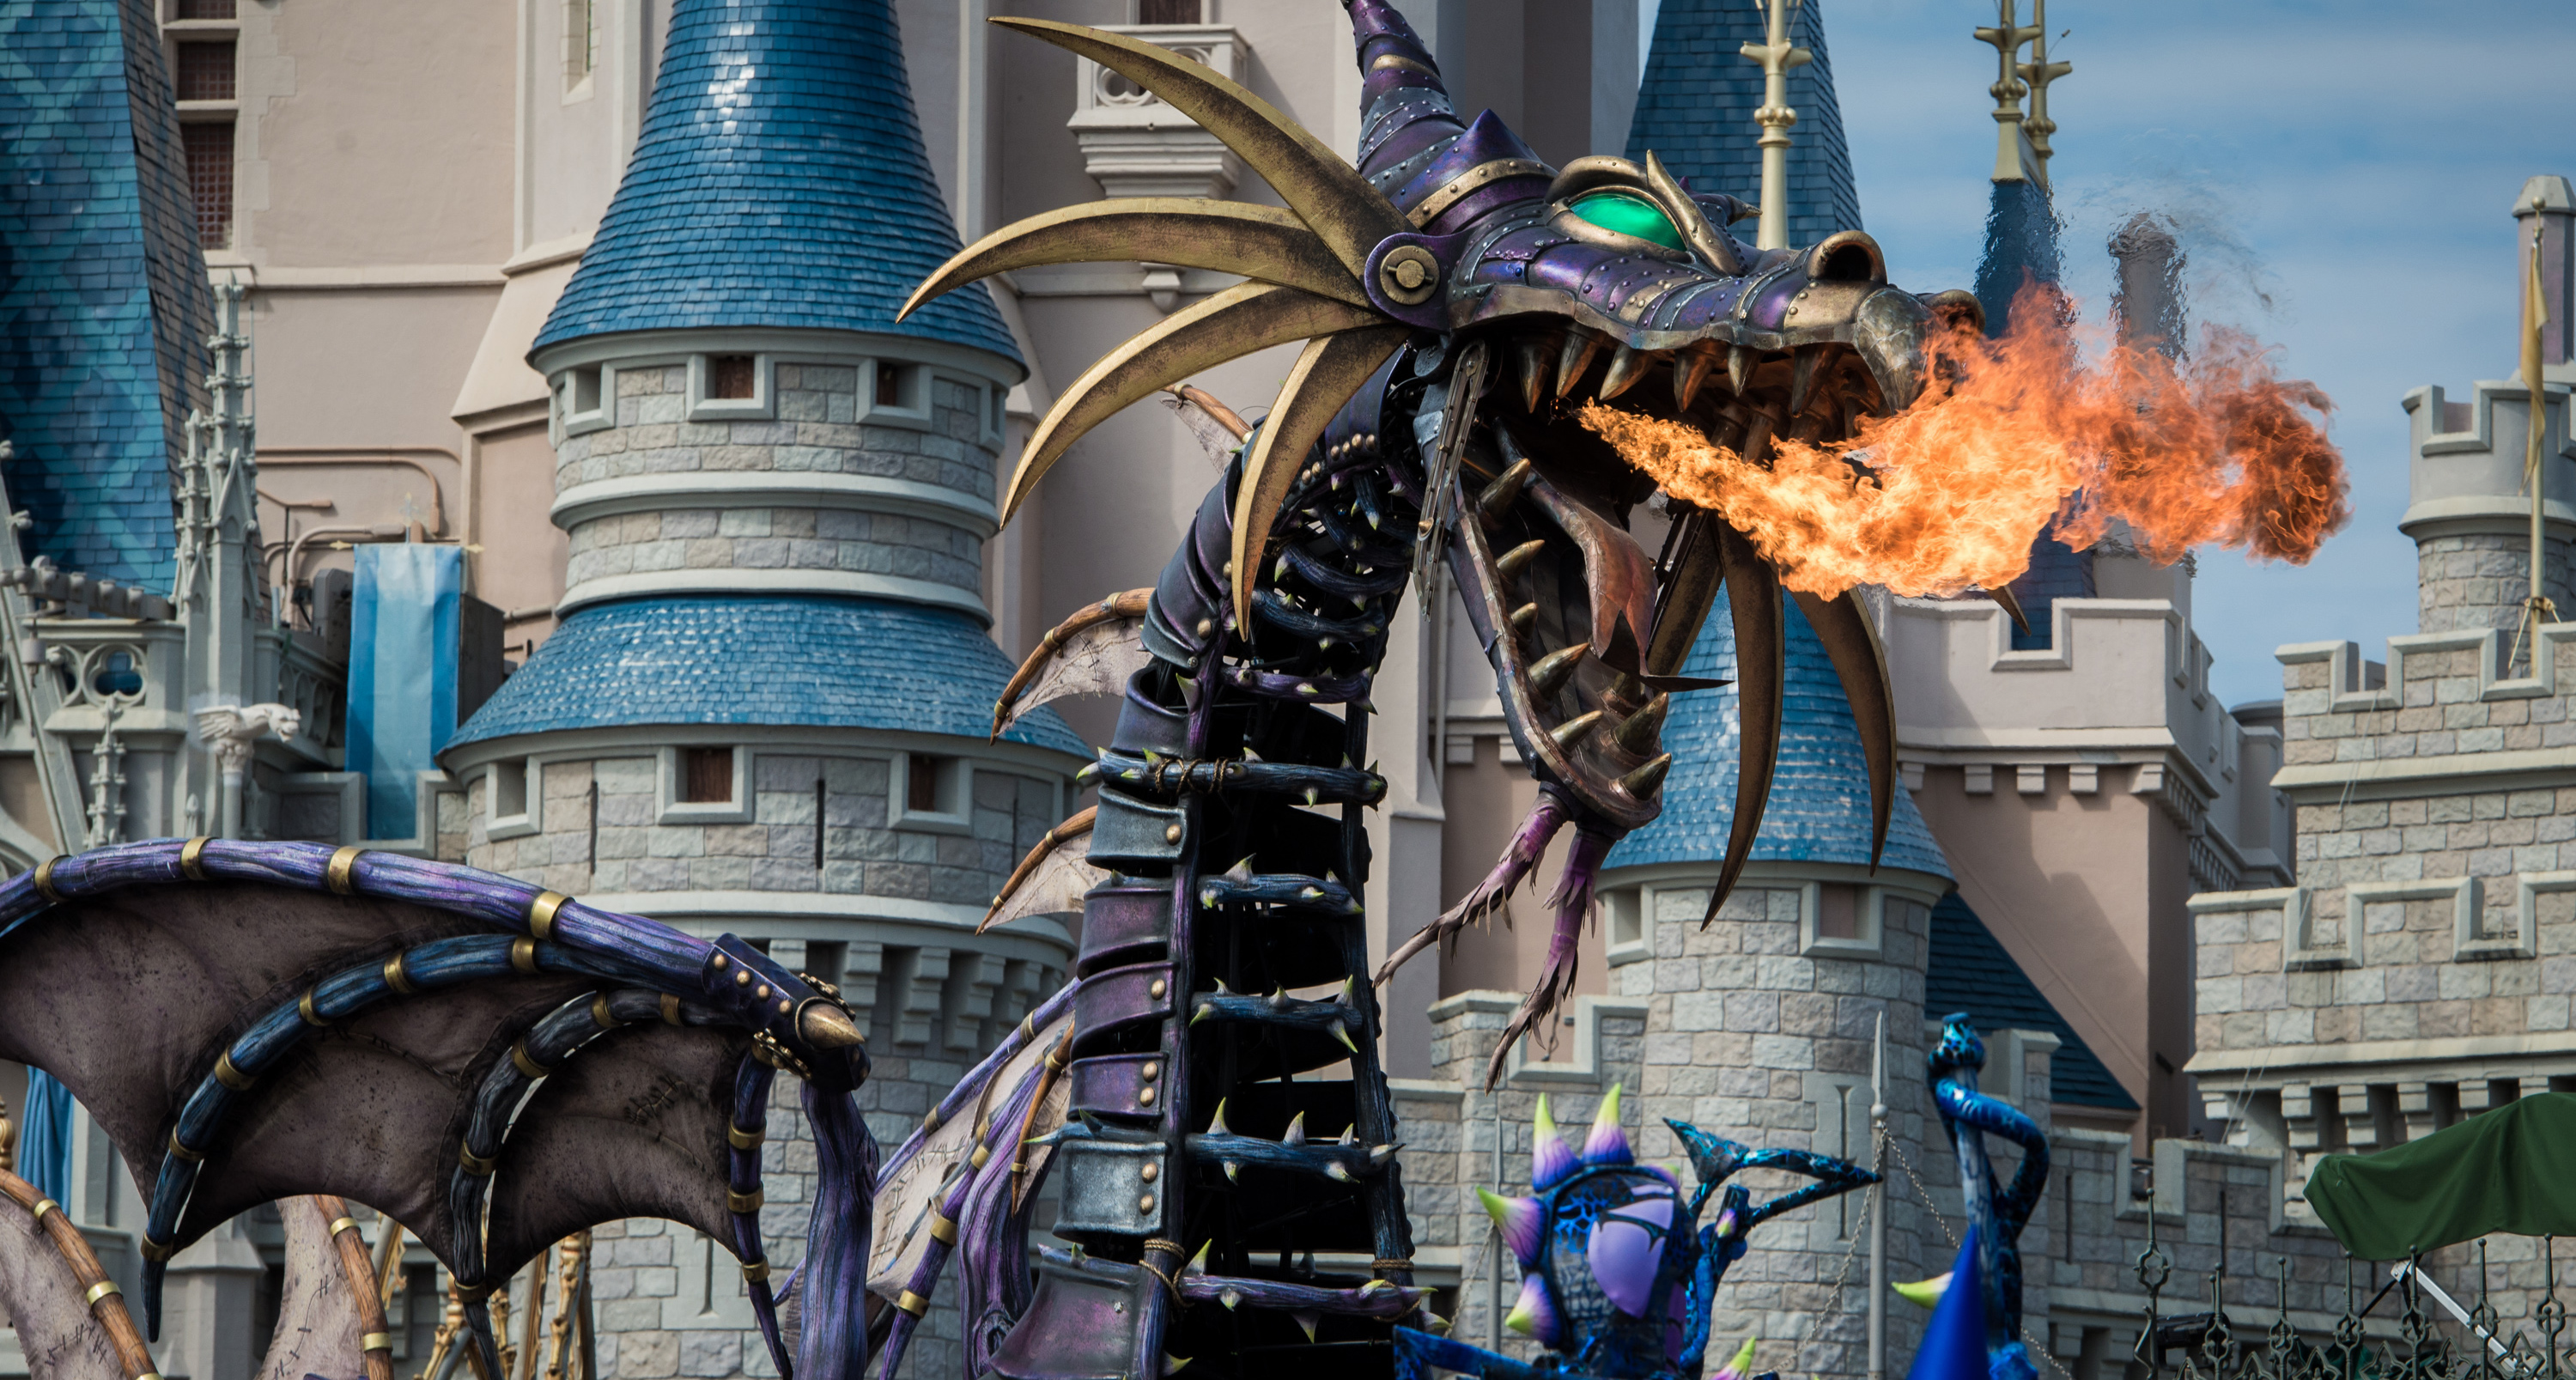 Dragon Maleficent escupe fuego en Disney Festival of Fantasy Parade, en el Parque Temático Magic Kingdom